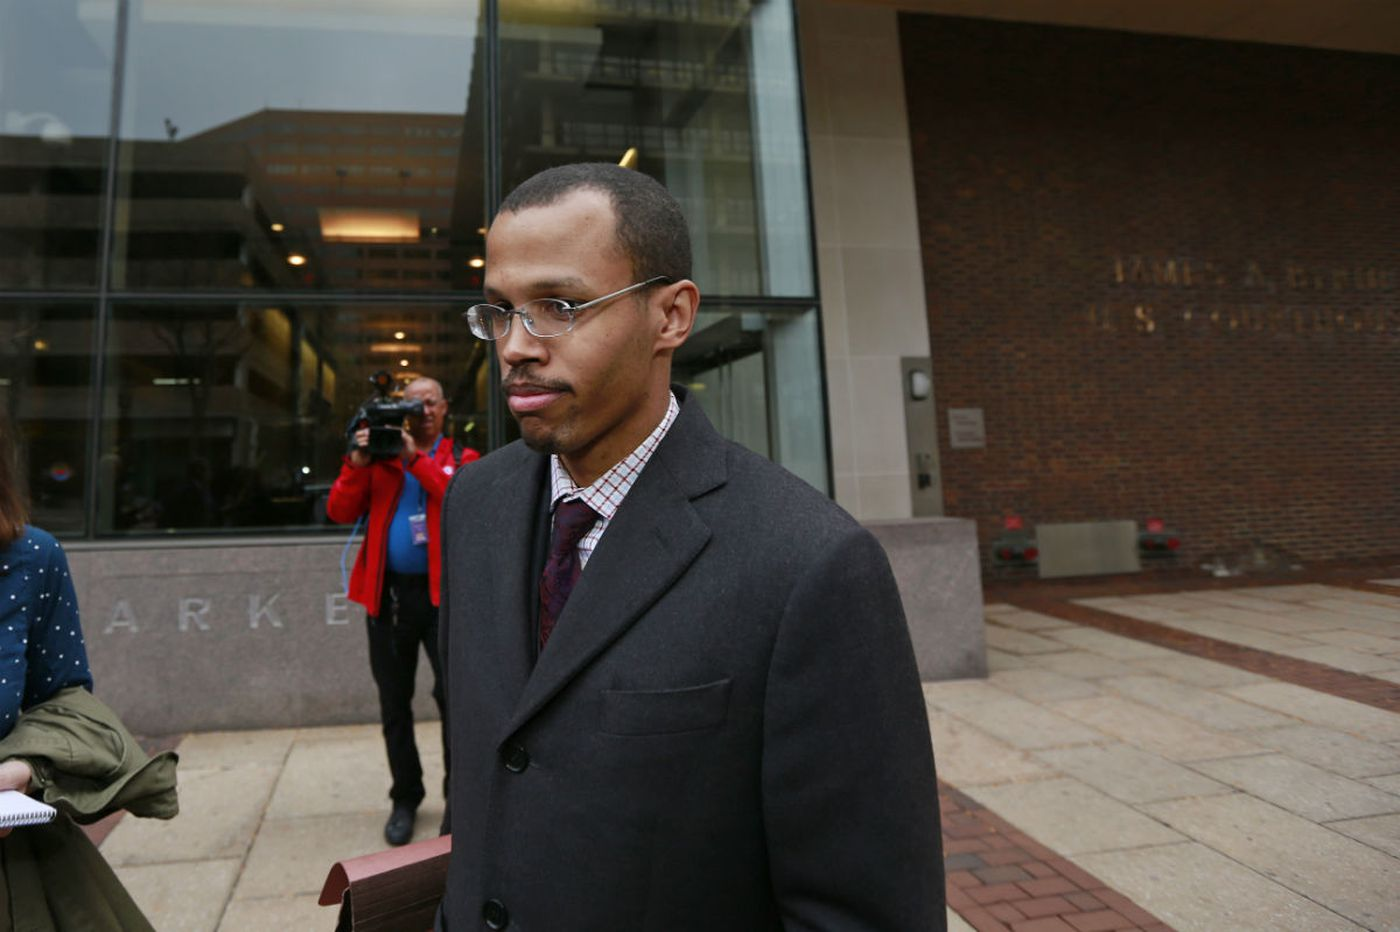 Chaka Fattah Jr. gets 5 years in prison, ordered to pay $1.1 million restitution